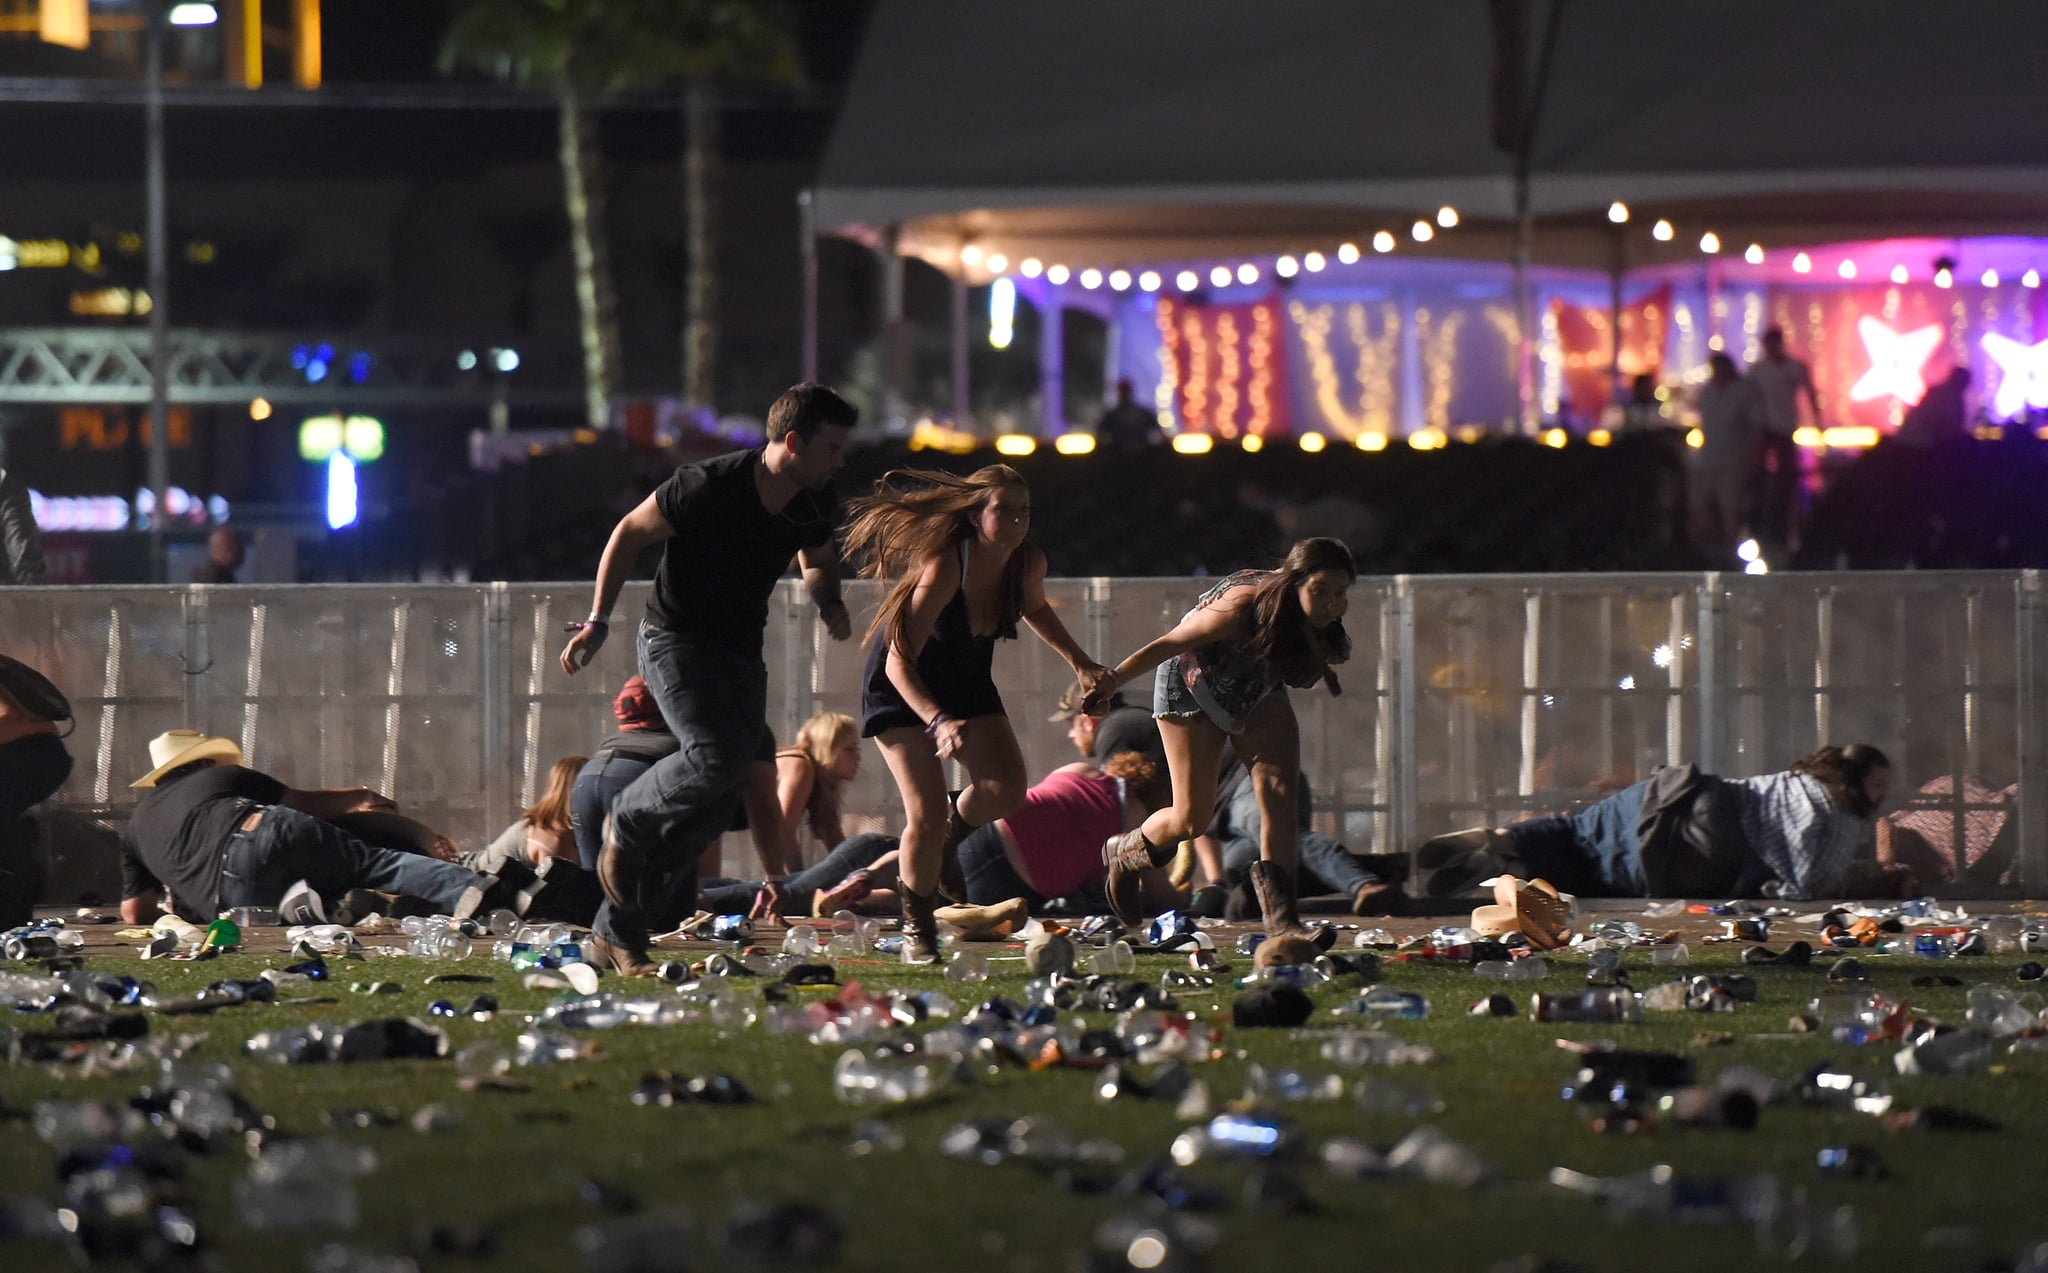 The victims of the Las Vegas shooting